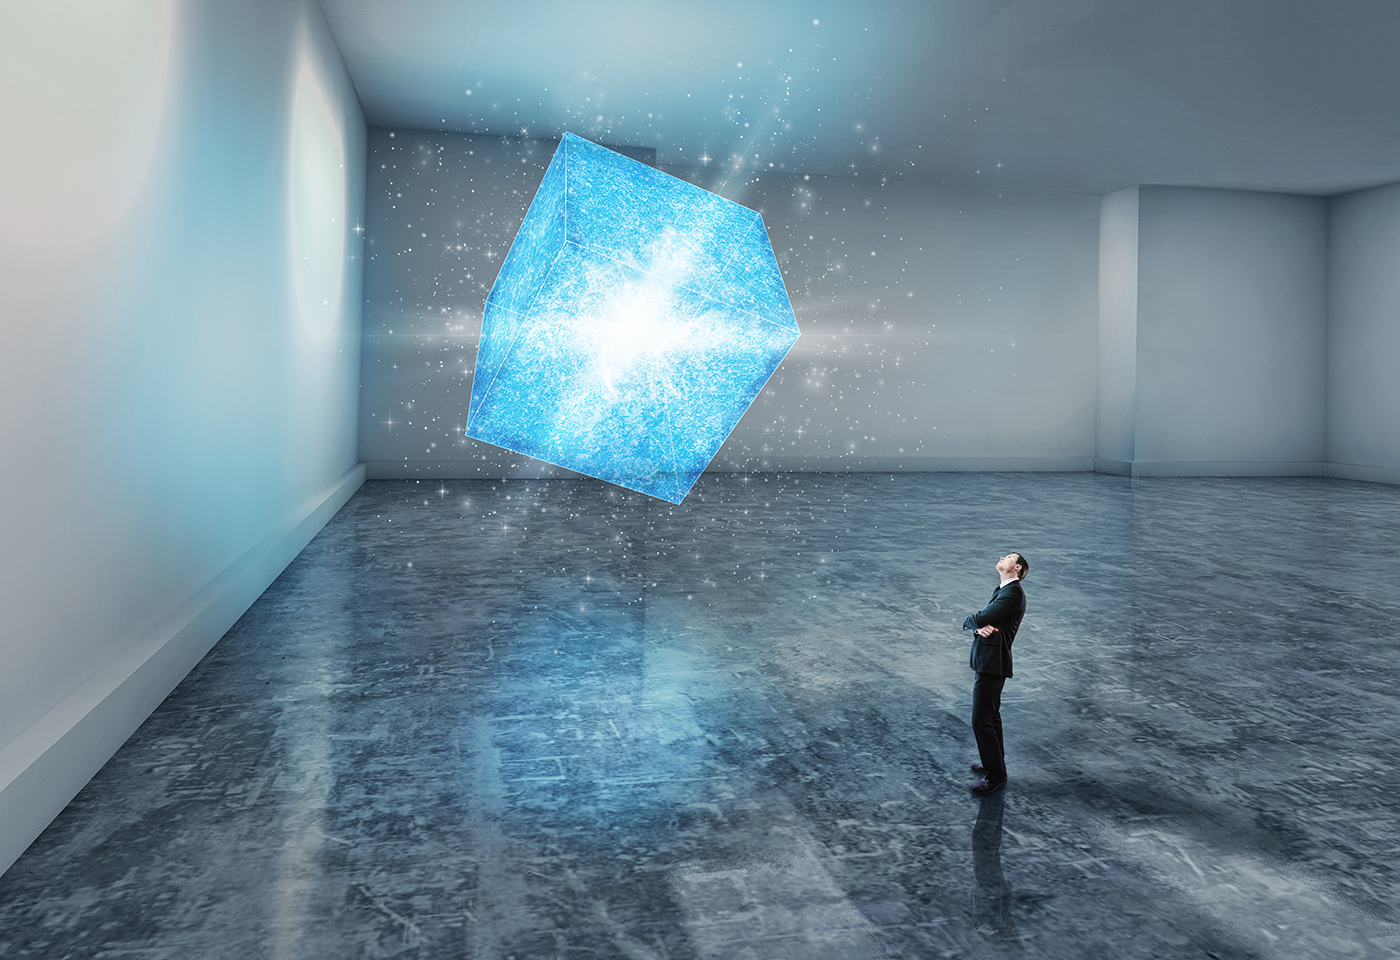 Man in suit looking at a light blue elevated cube